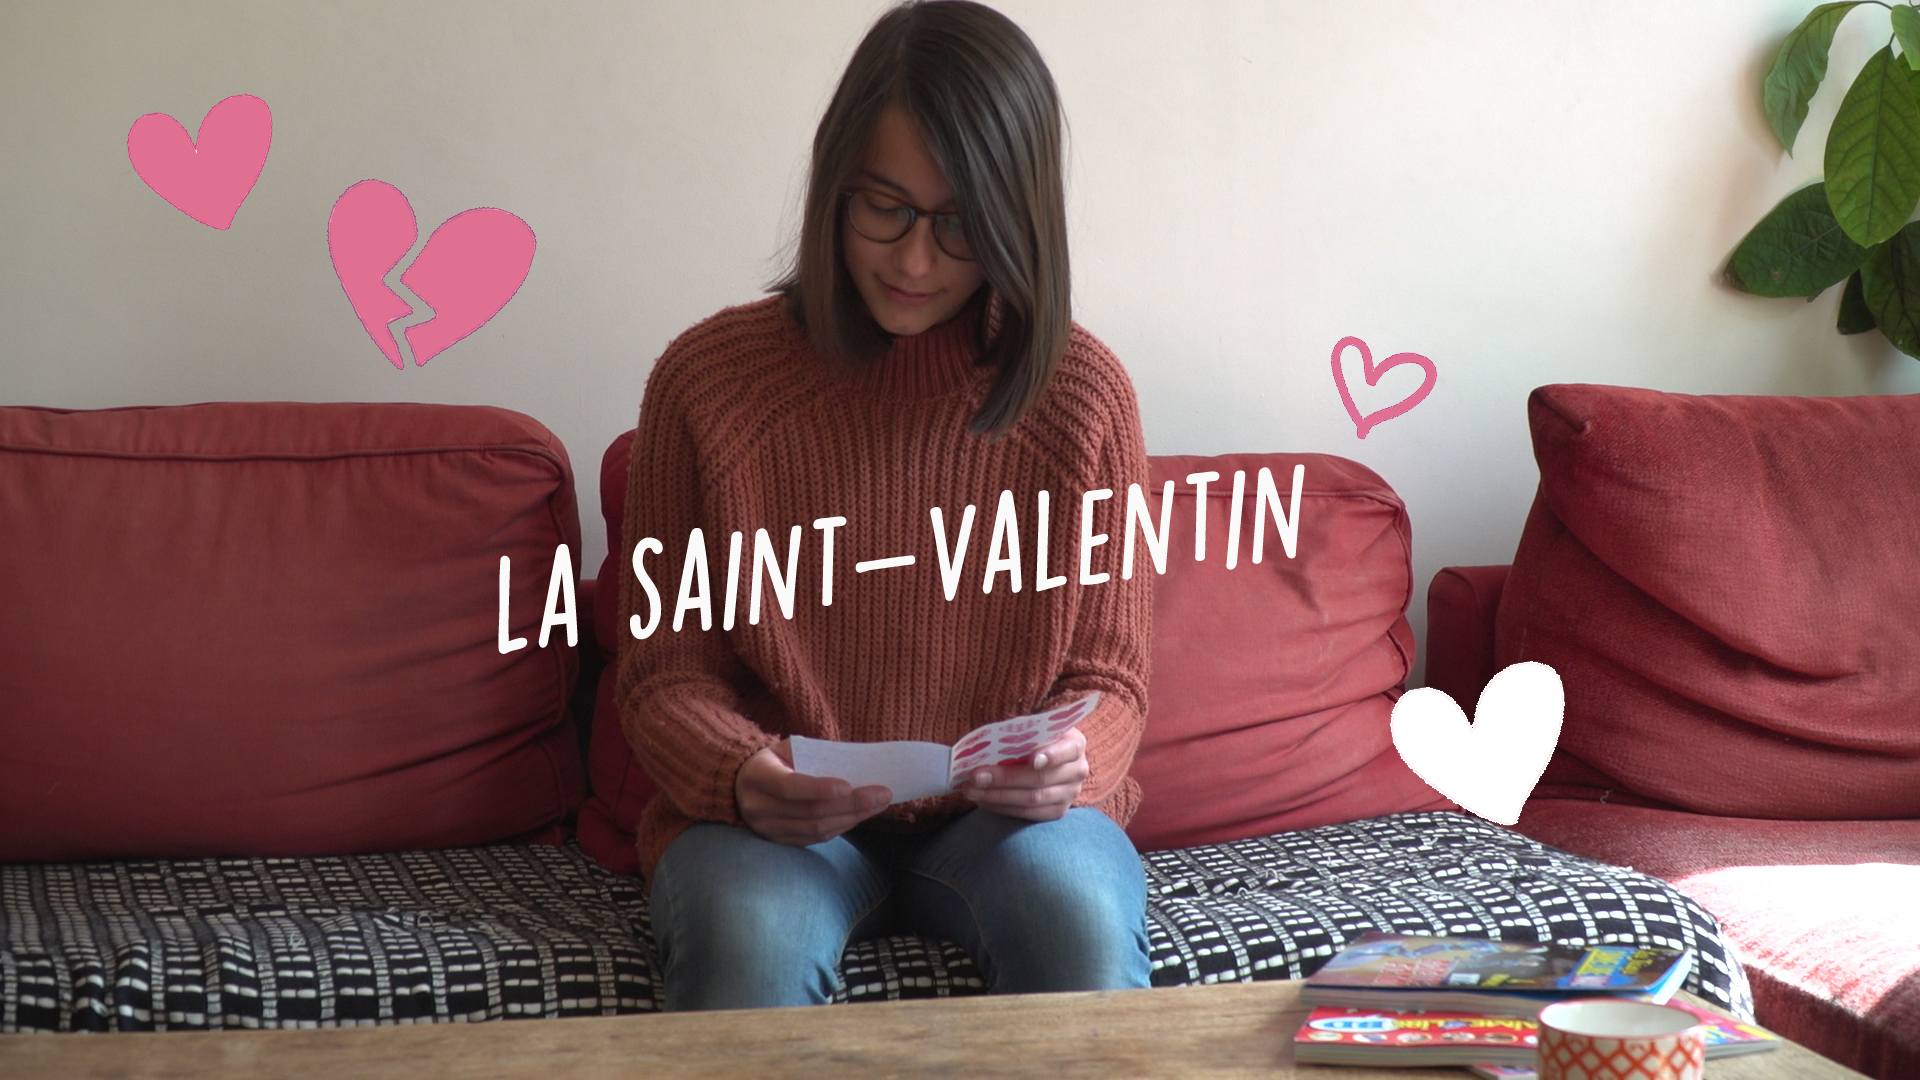 La Saint-Valentin screenshot